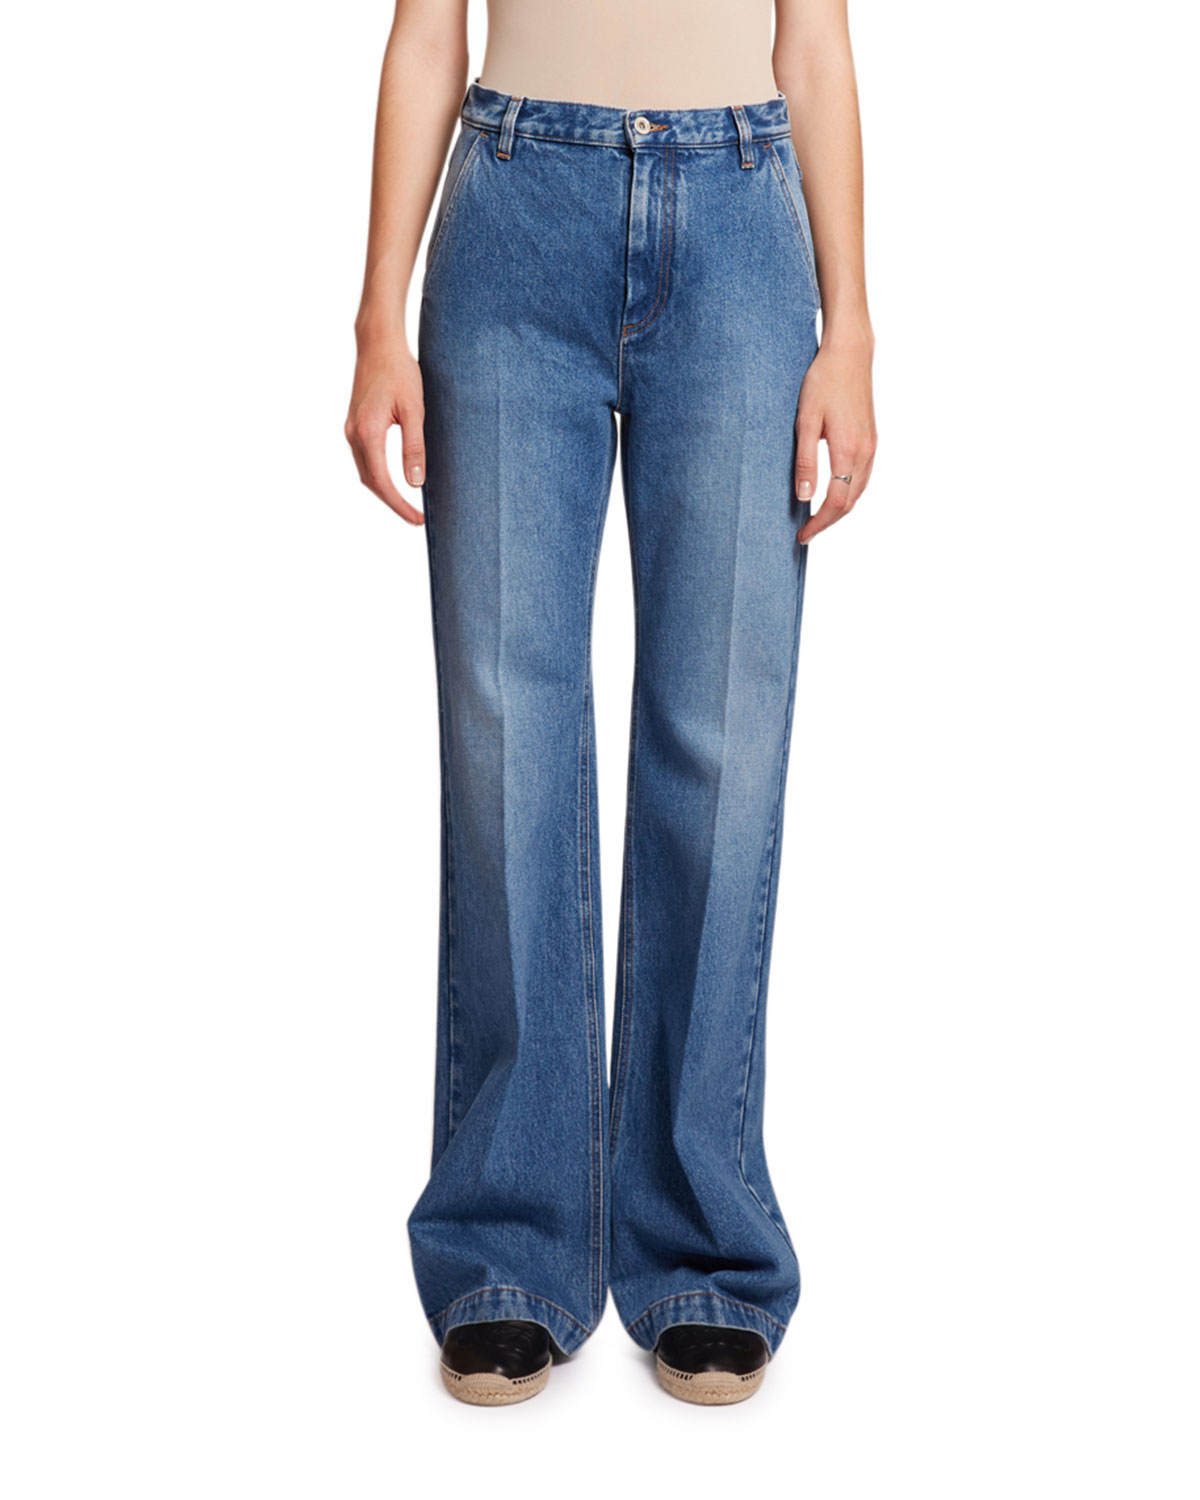 Loewe Jeans FLARED HIGH-RISE WASHED DENIM JEANS